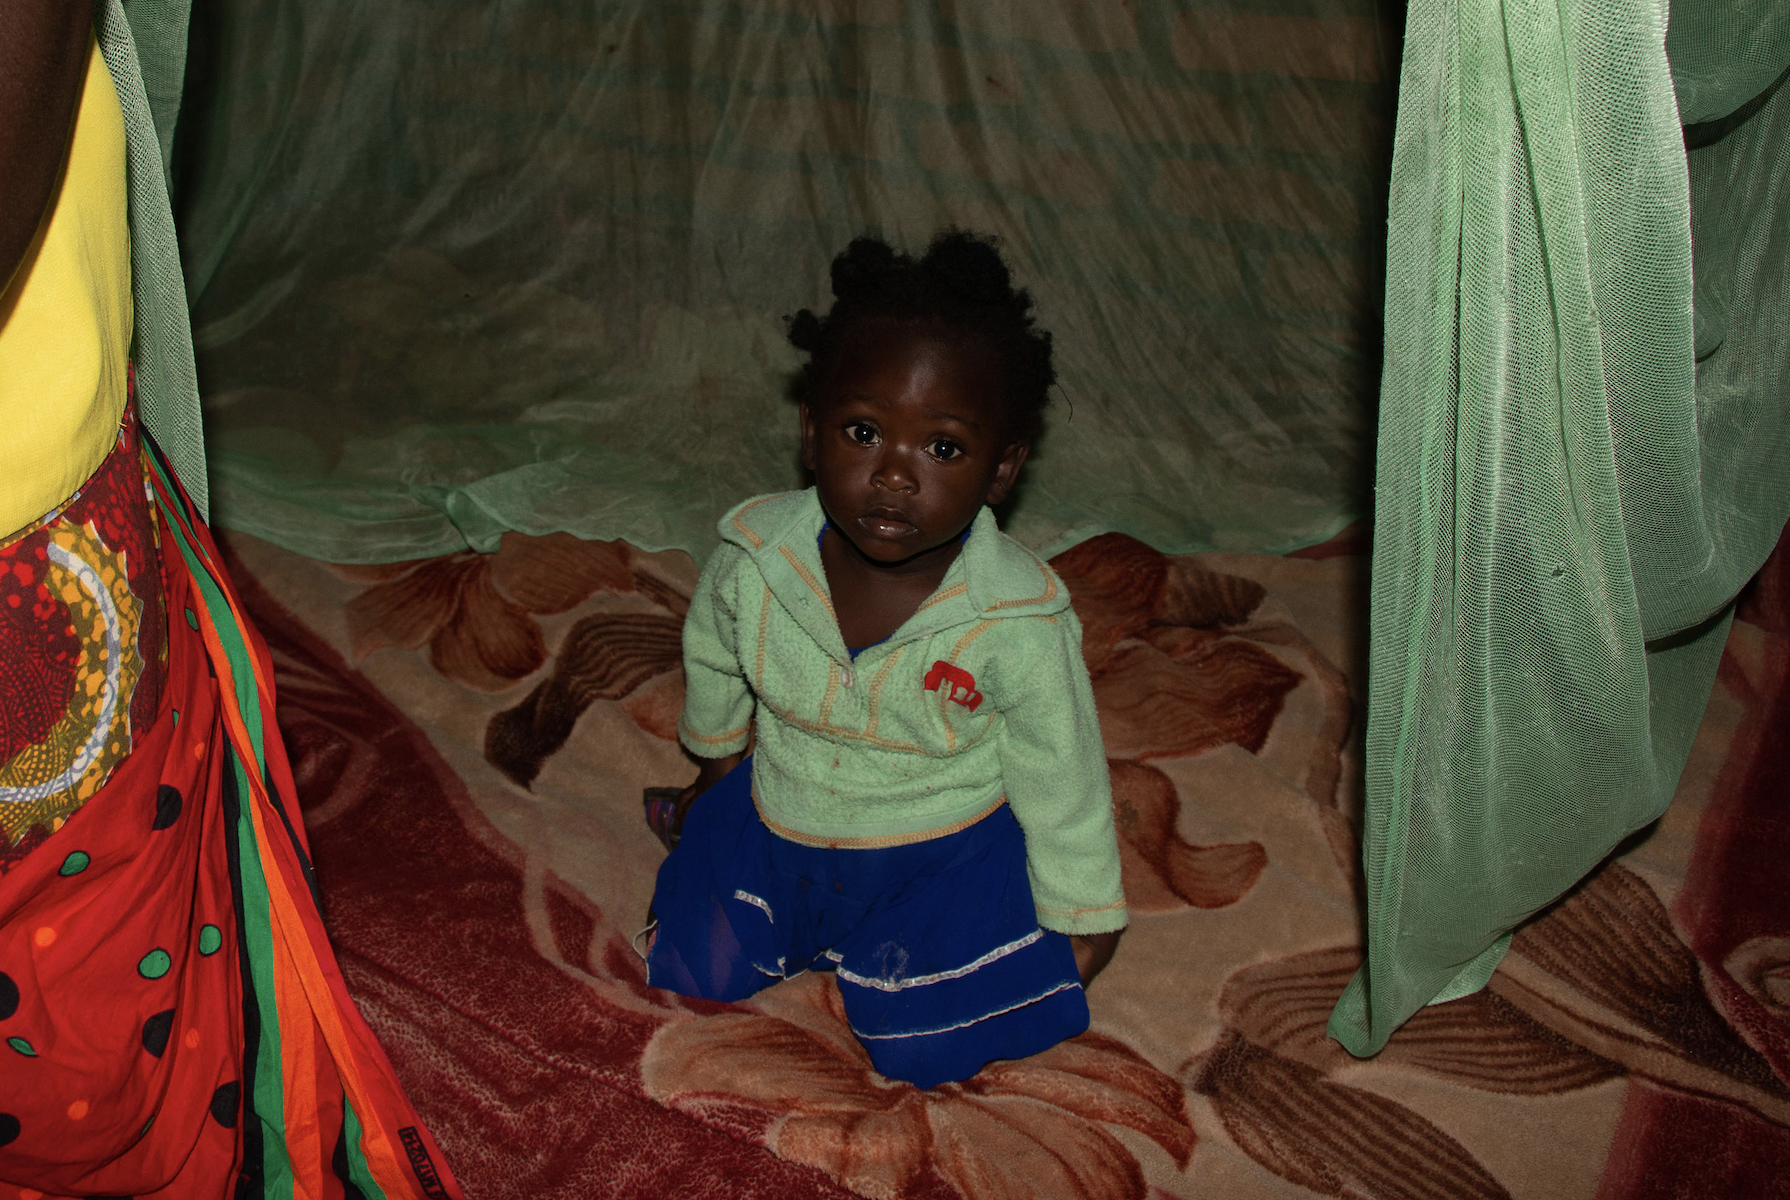 A young girl in a green sweater and shorts sits under a green mosquito net.